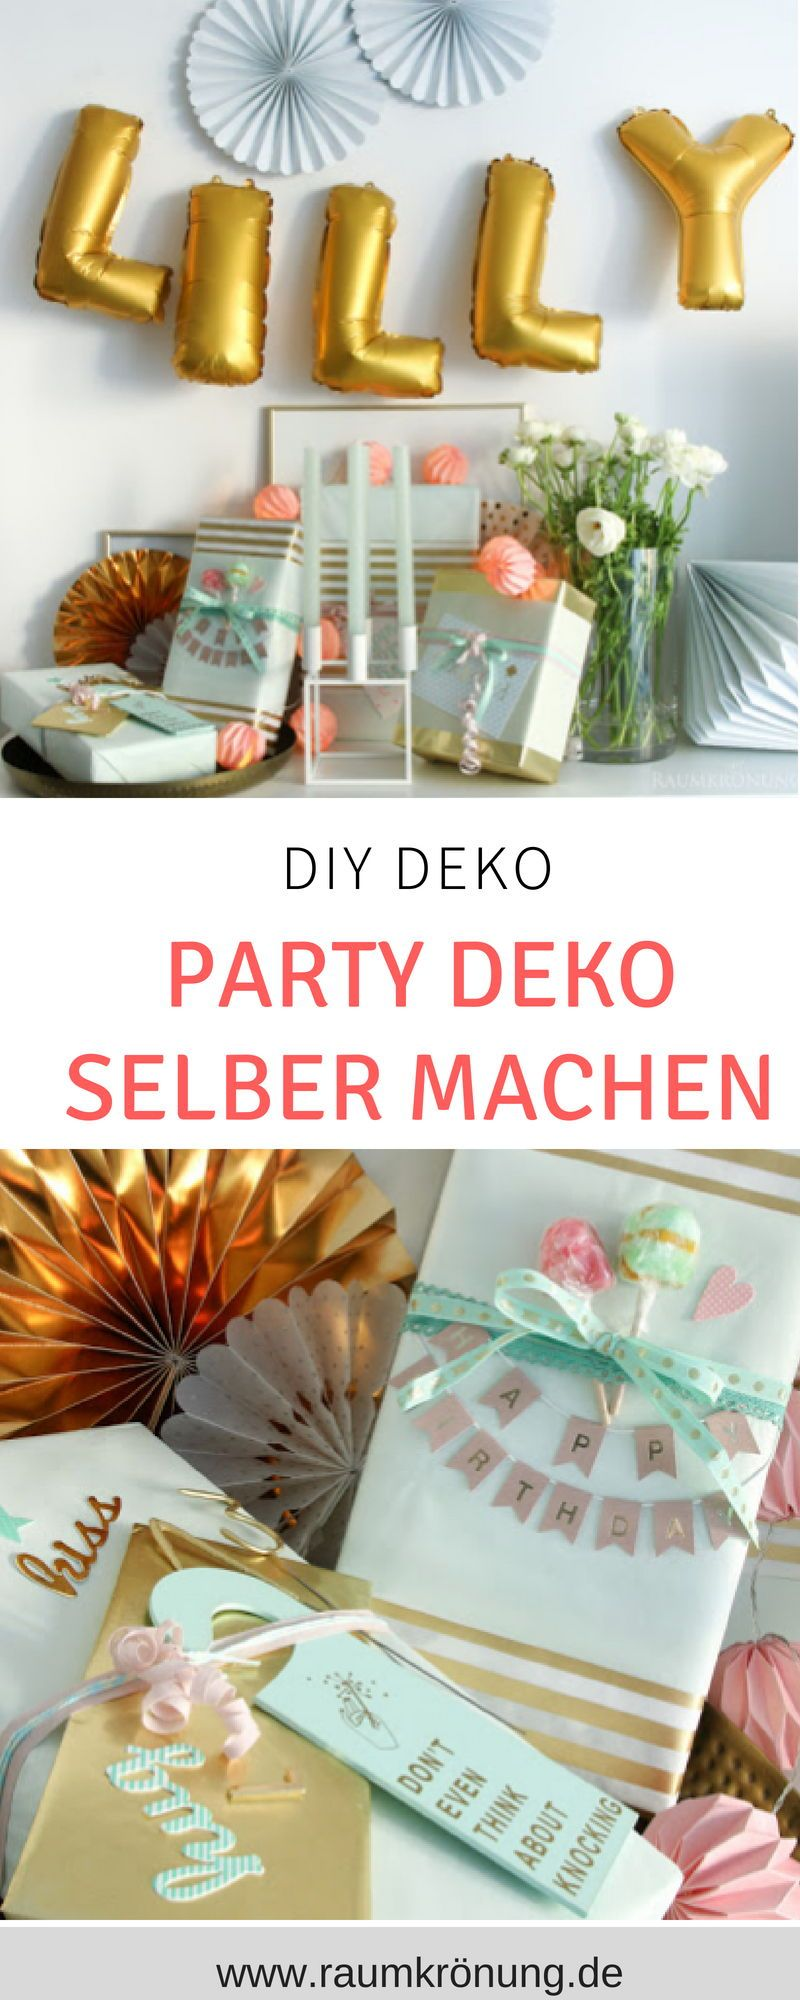 Deko Ideen Party Party Deko Geburtstag Ideen Party Deko Geburtstag Dekoration